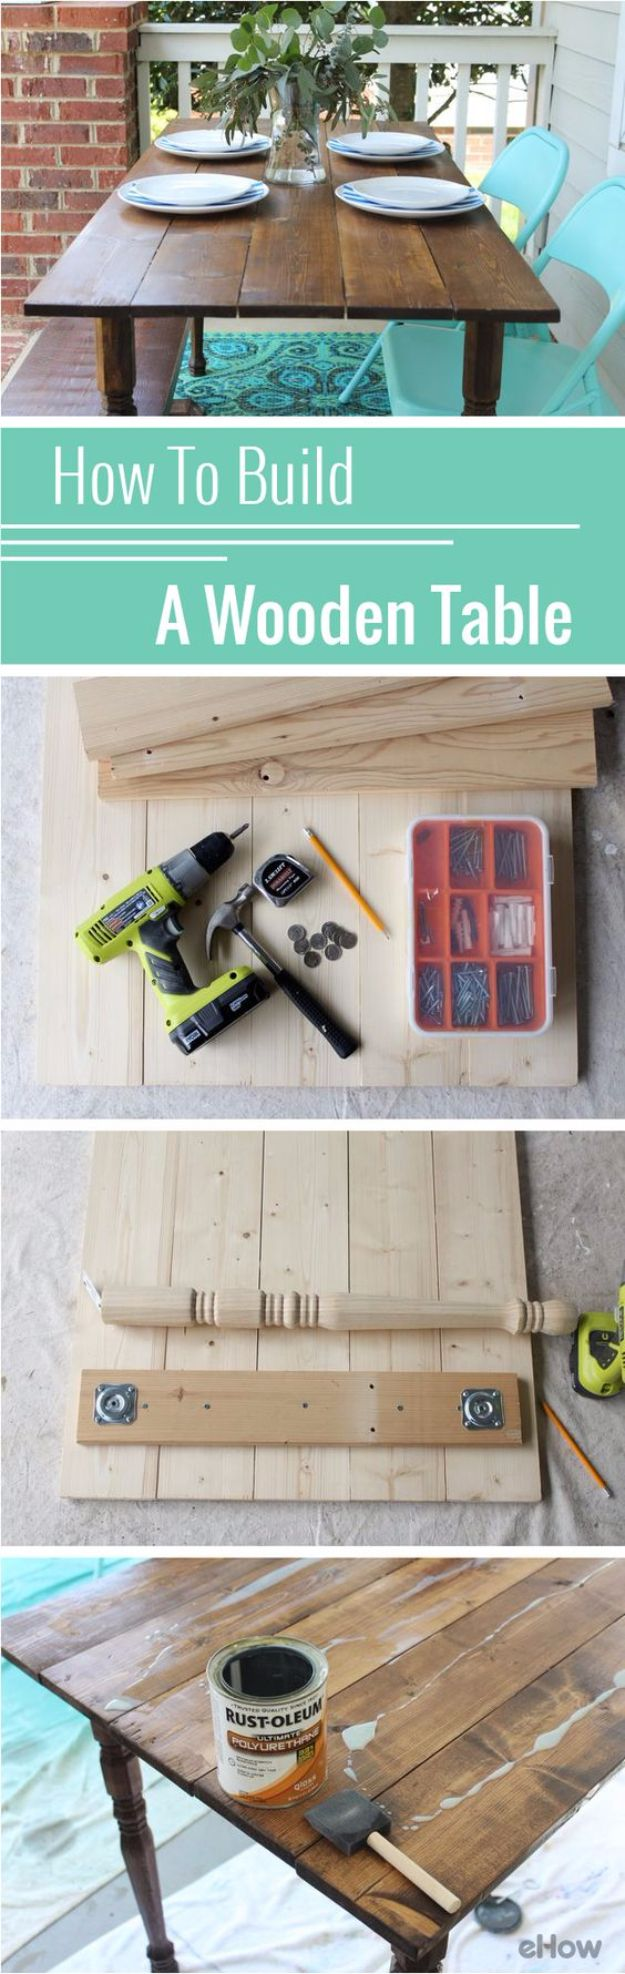 DIY Dining Room Table Projects - Wooden Dining Table Tutorial - Creative Do It Yourself Tables and Ideas You Can Make For Your Kitchen or Dining Area. Easy Step by Step Tutorials that Are Perfect For Those On A Budget